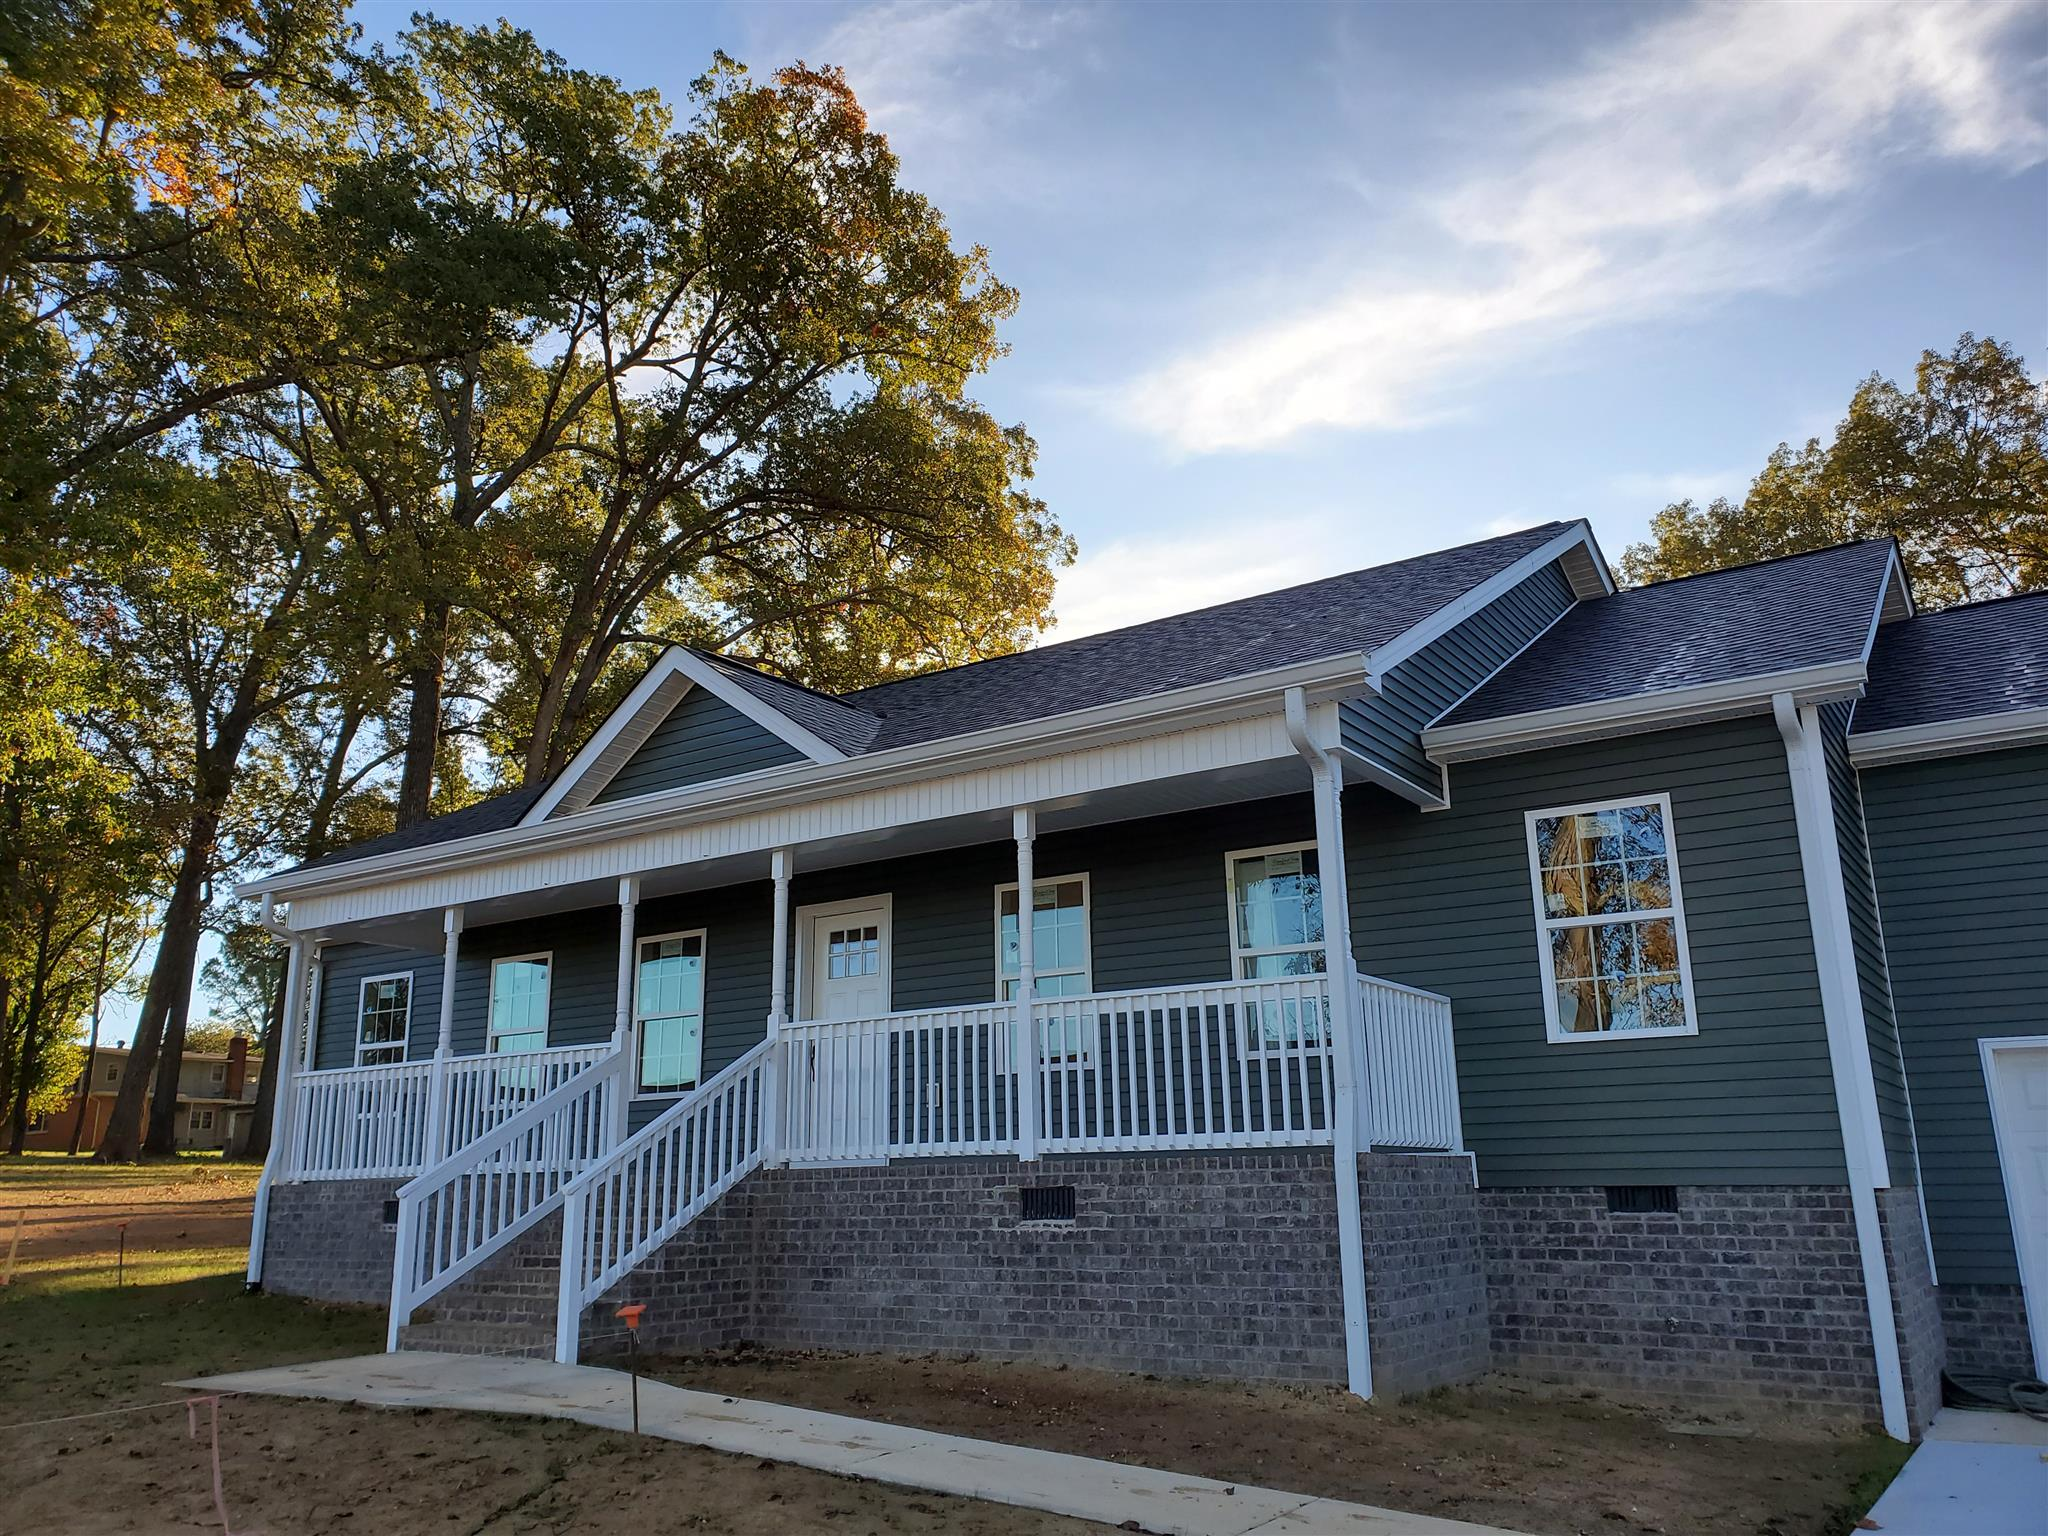 408 Crouch Rd, Manchester, Tennessee